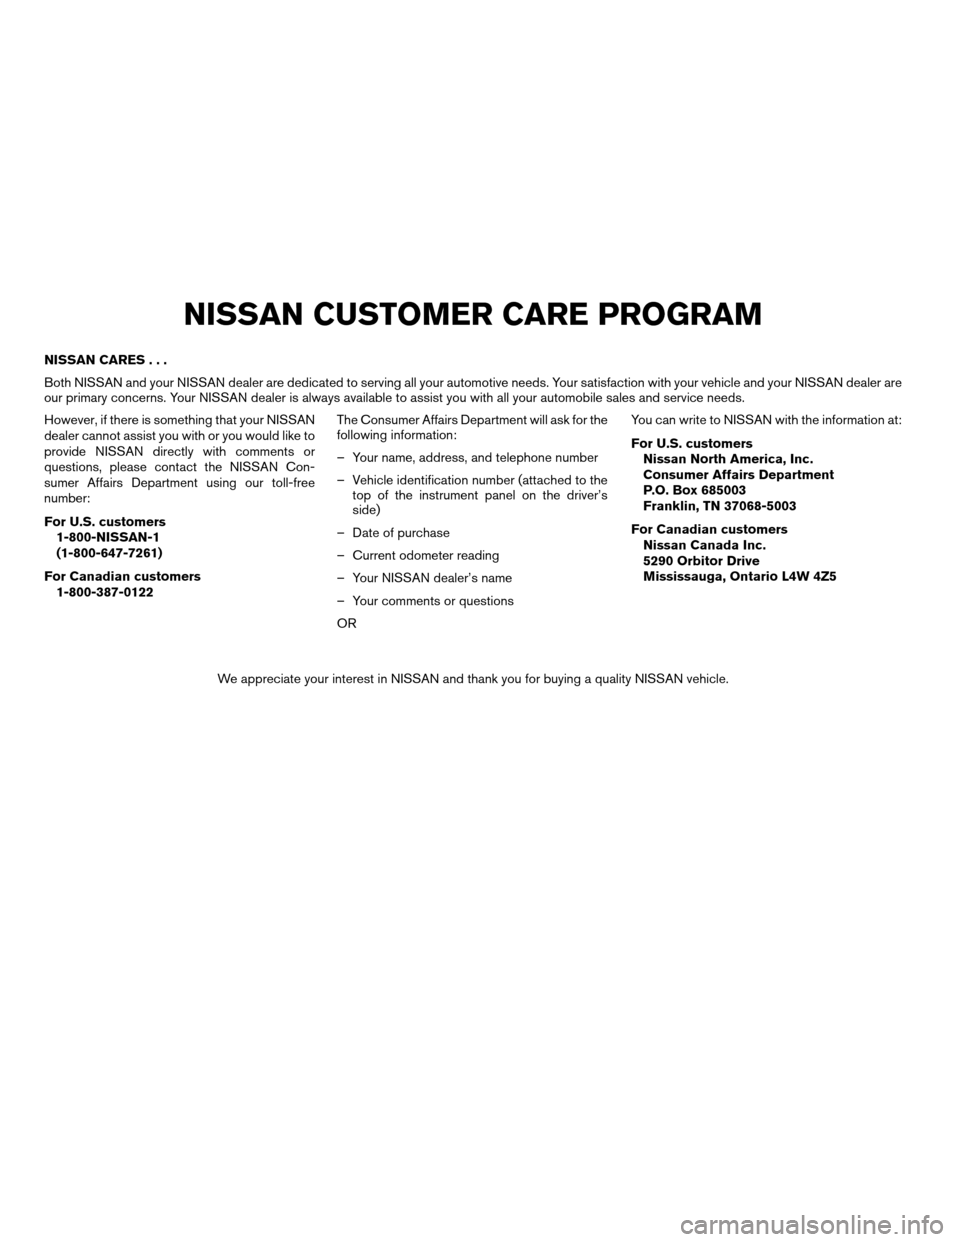 NISSAN ALTIMA COUPE 2009 D32 / 4.G Owners Manual NISSAN CARES... Both NISSAN and your NISSAN dealer are dedicated to serving all your automotive needs. Your satisfaction with your vehicle and your NISSAN dealer are our primary concerns. Your NISSAN